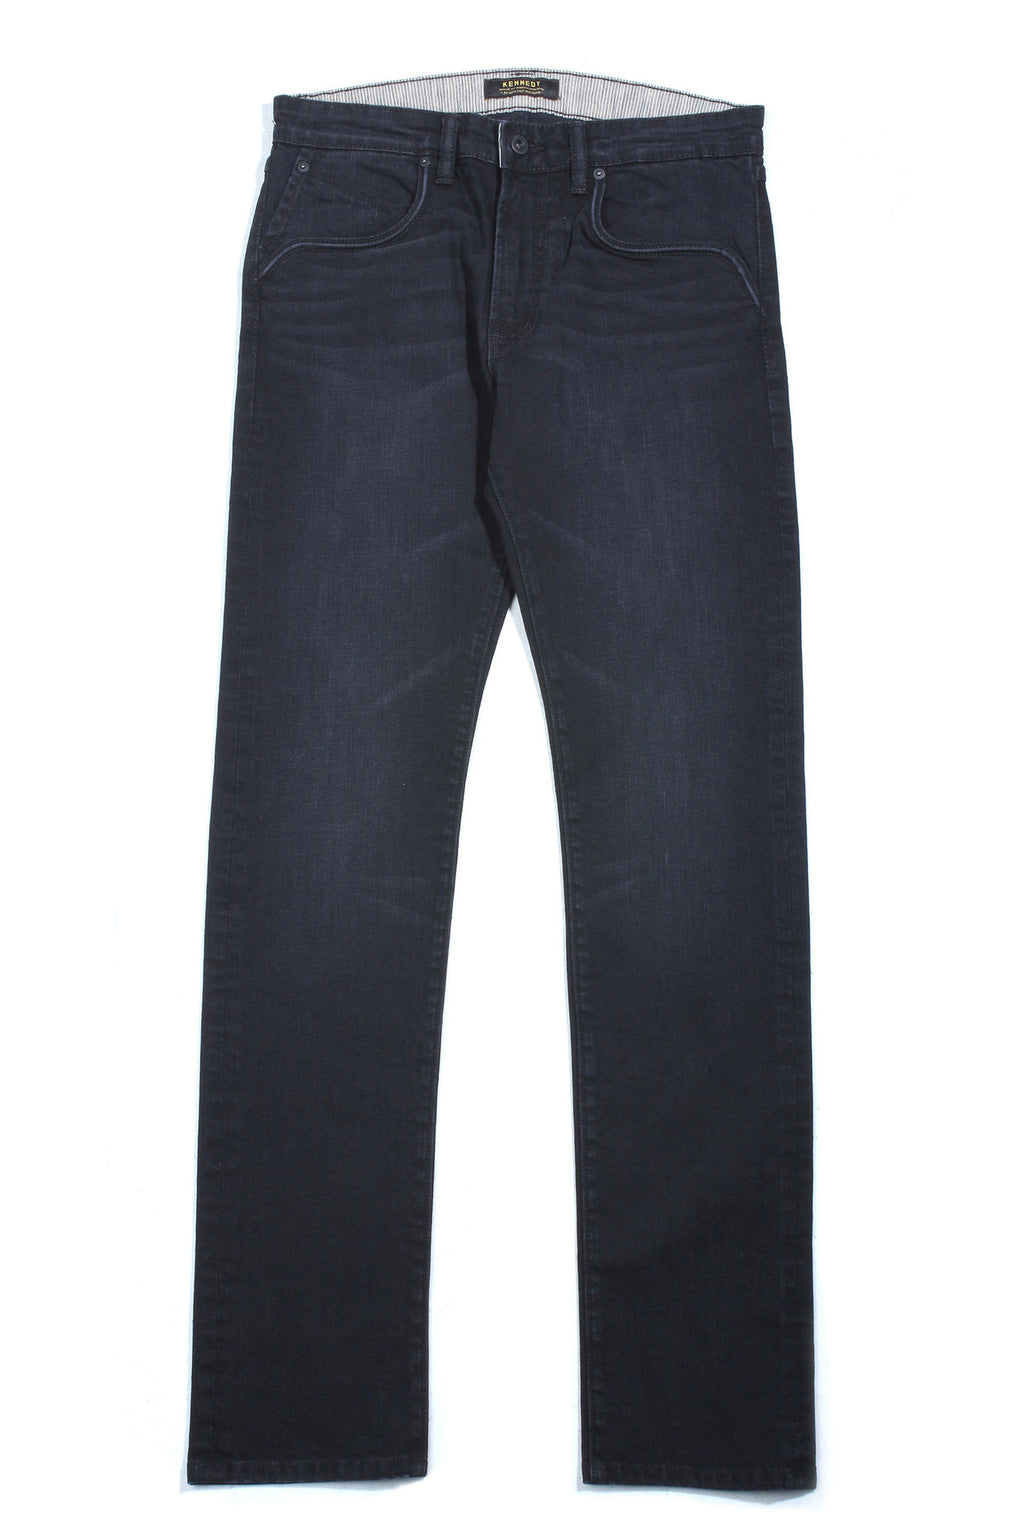 Kennedy Denim Z-Line Pants Isley Pants Ascent Wear - 1